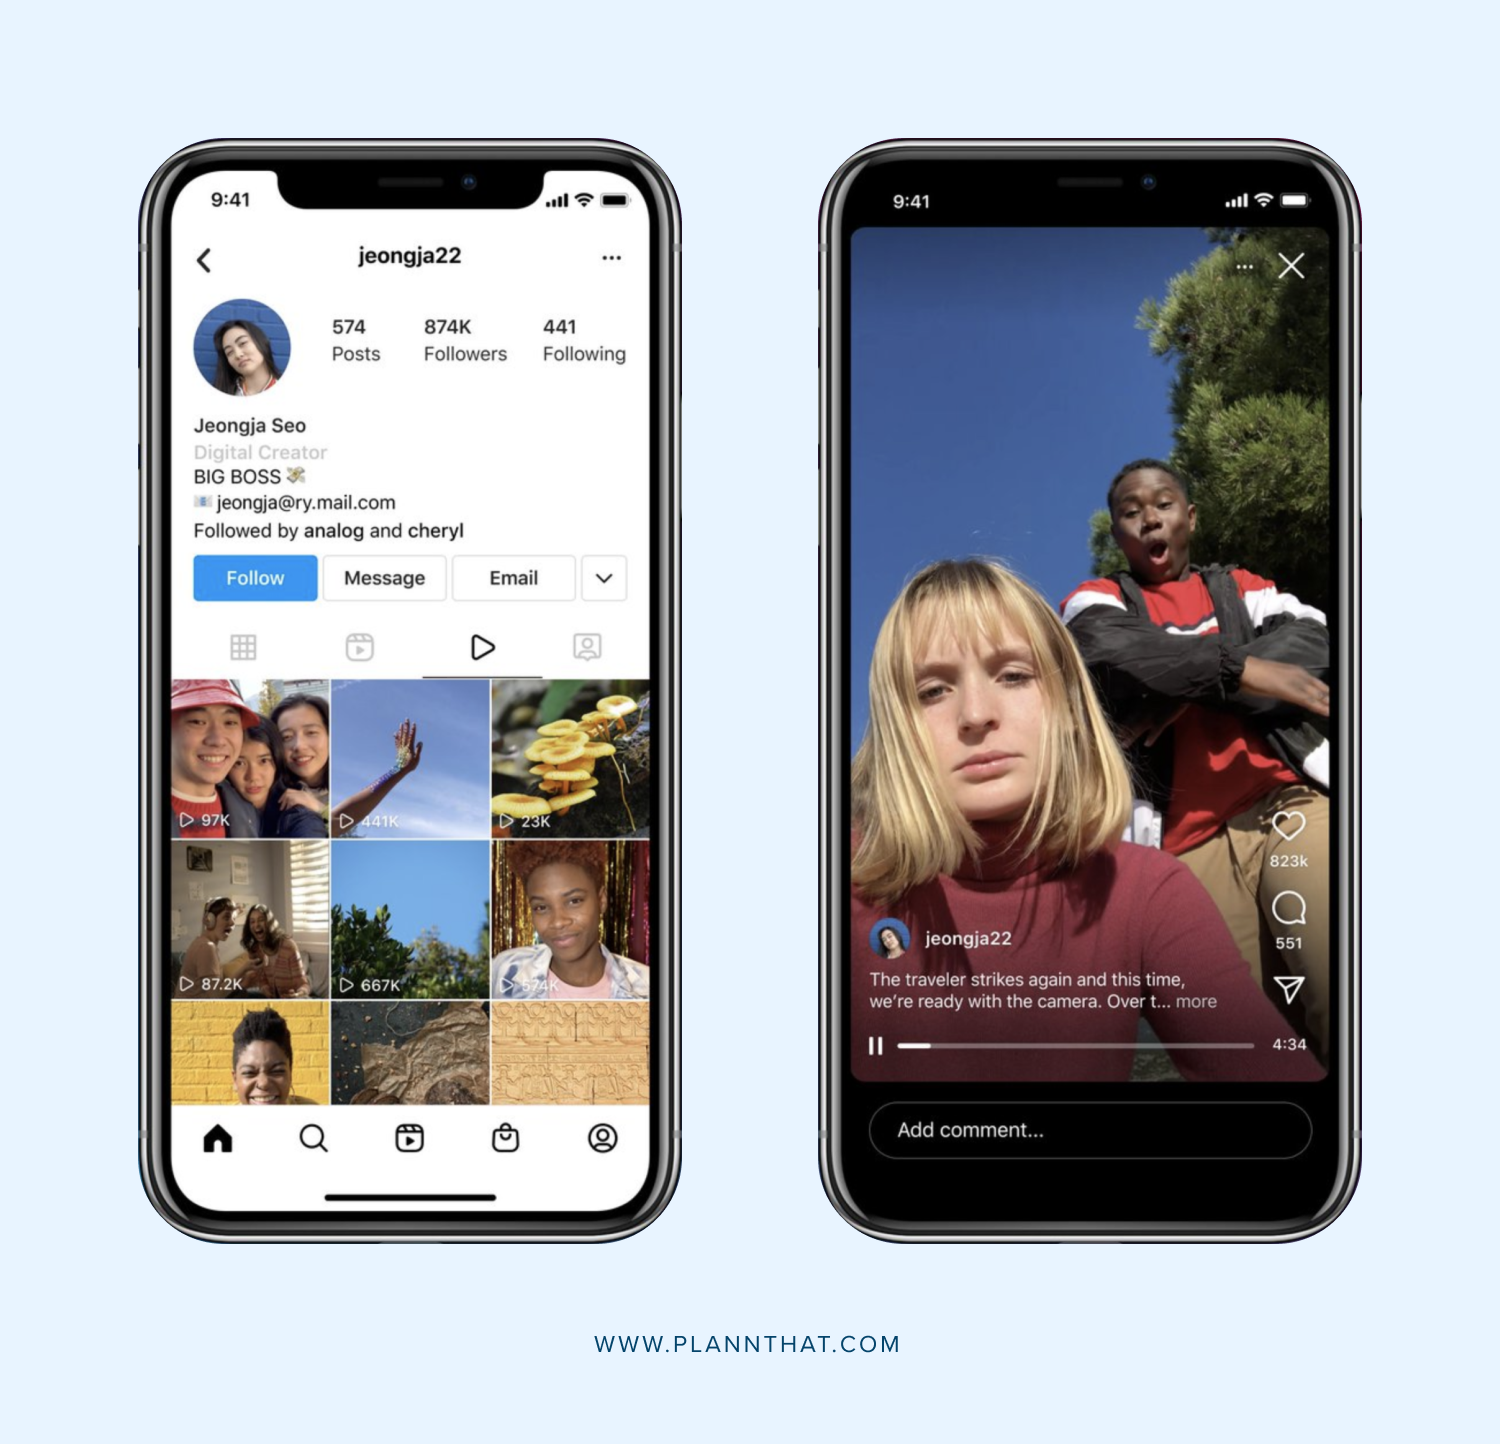 Instagram is combining IGTV and feed videos into one format